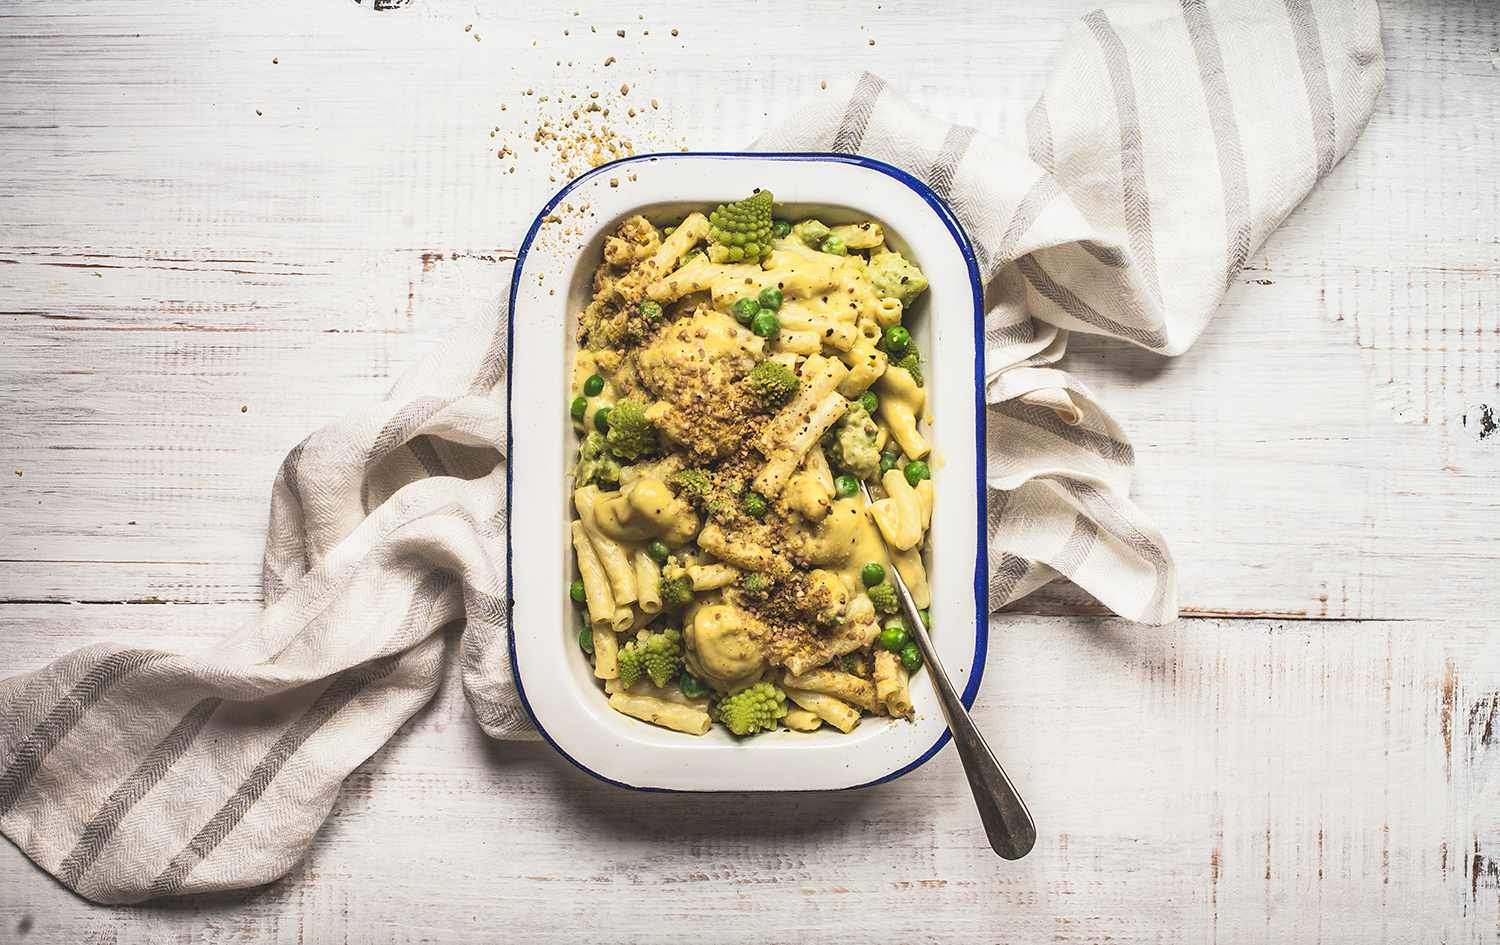 Green Mac and Cheeze on Linen